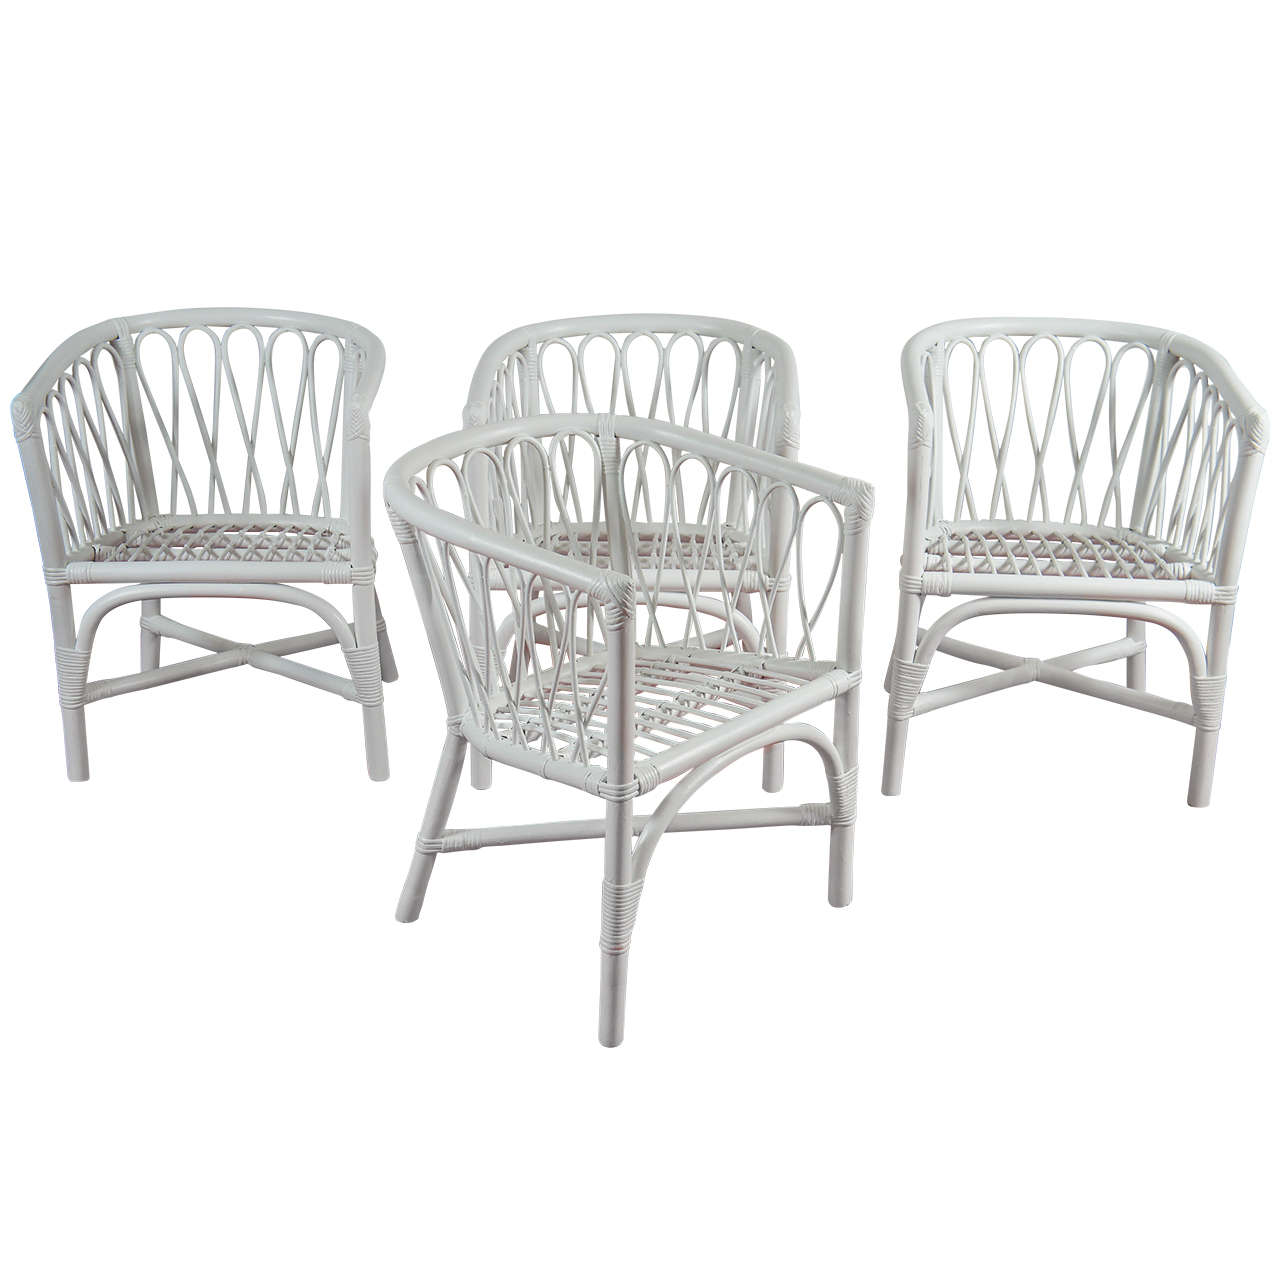 Set Of 4 Bentwood And Rattan Dining Chairs For Sale At 1stdibs